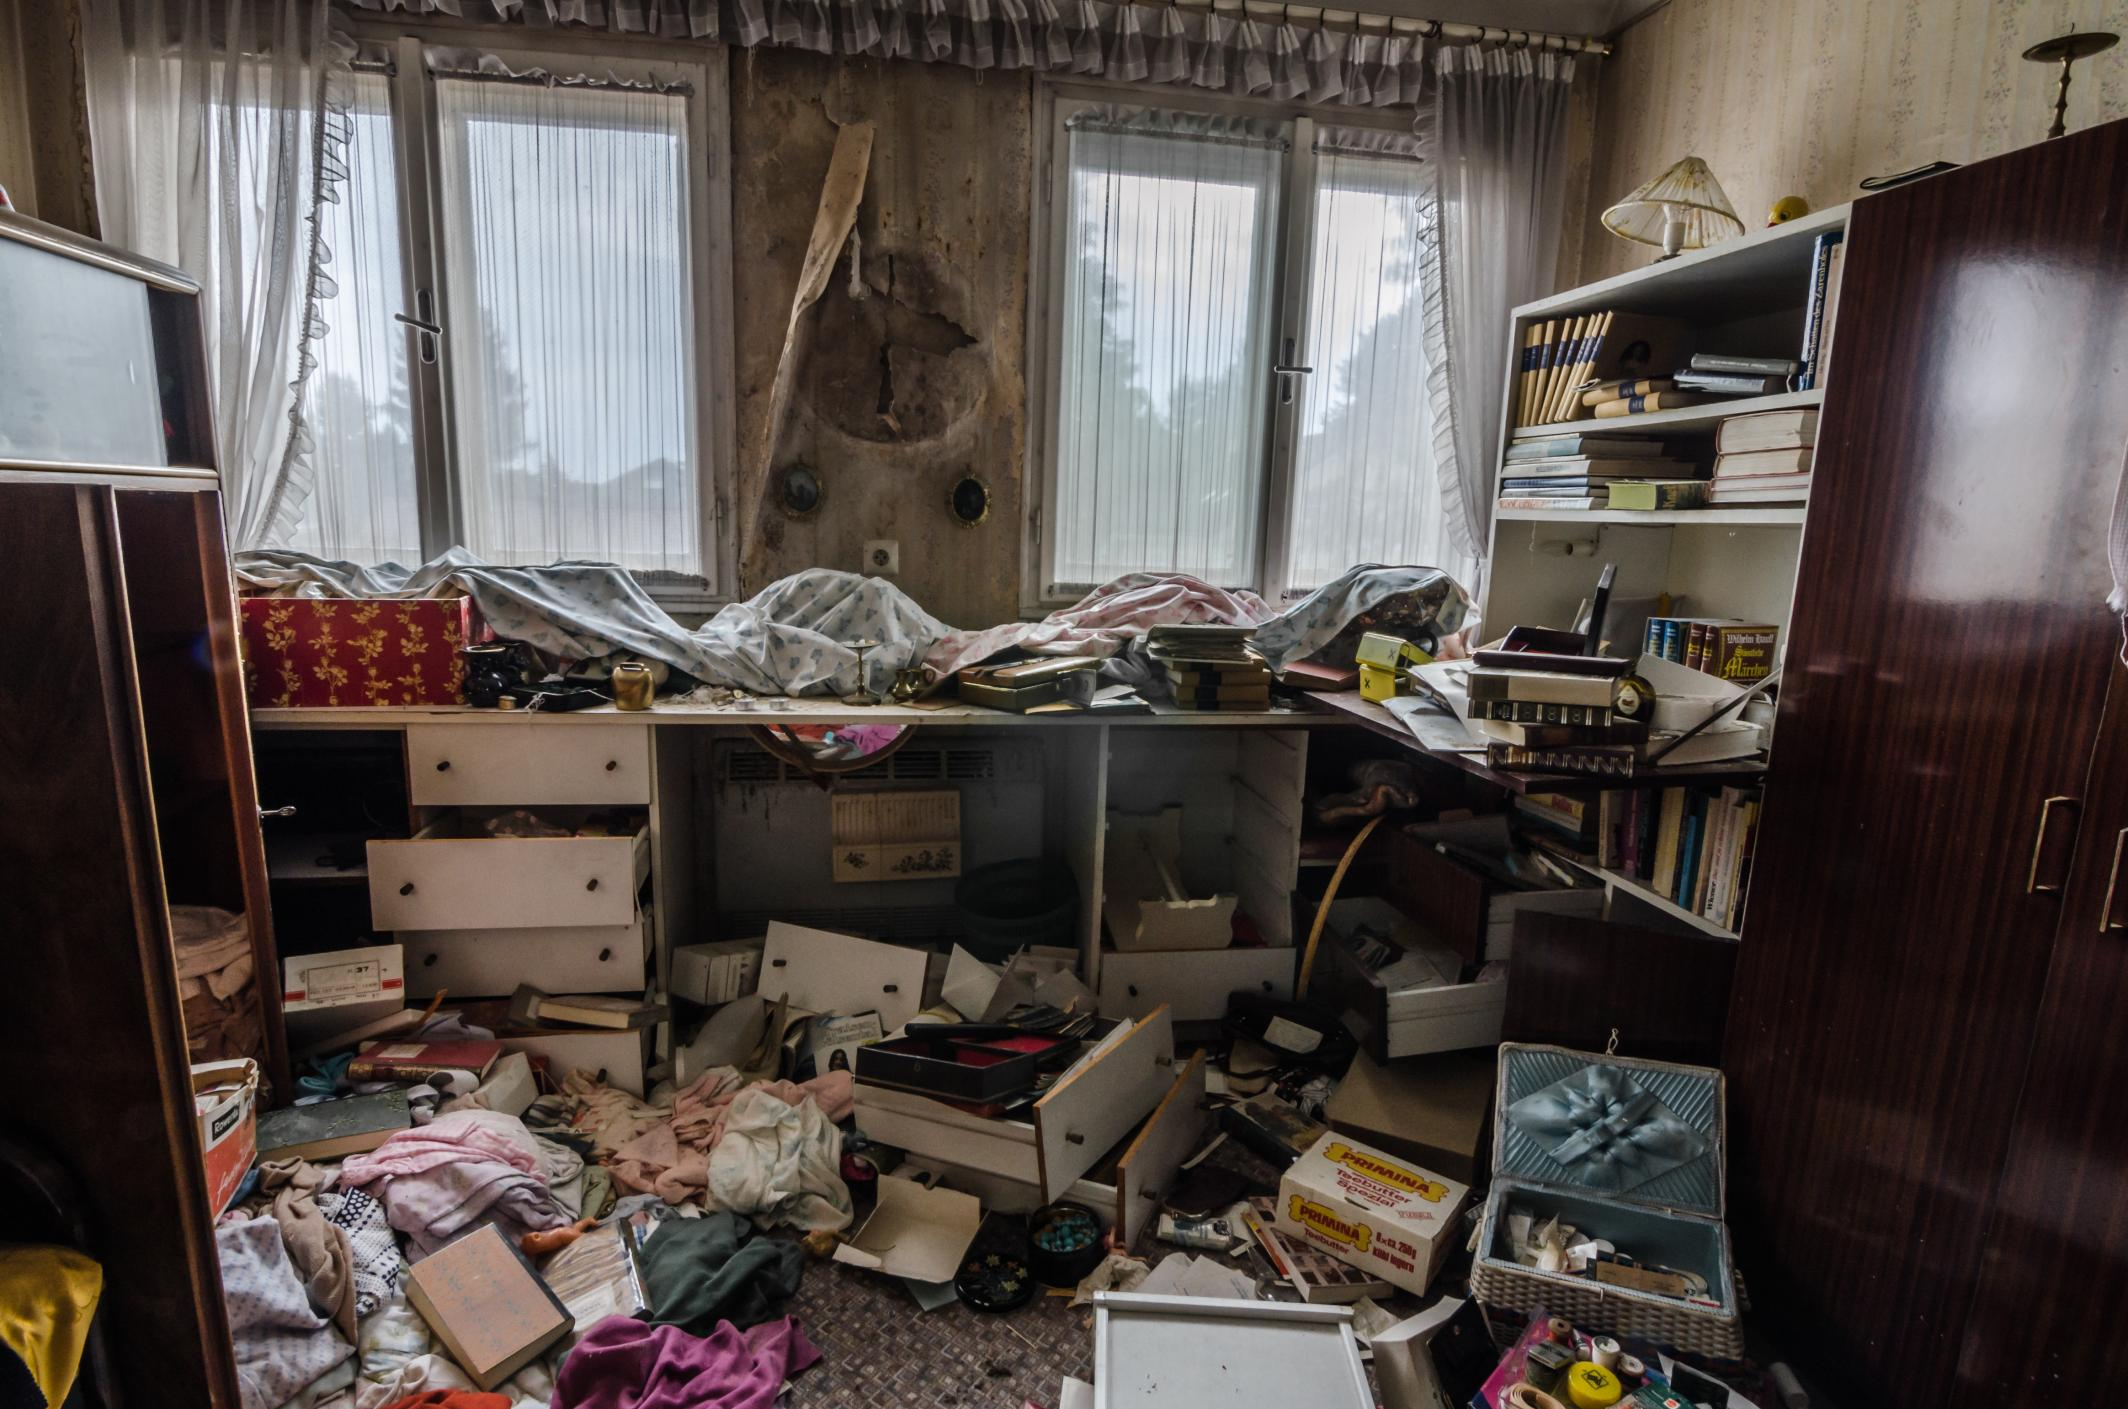 This is a picture of a hoarding/clutter removal.